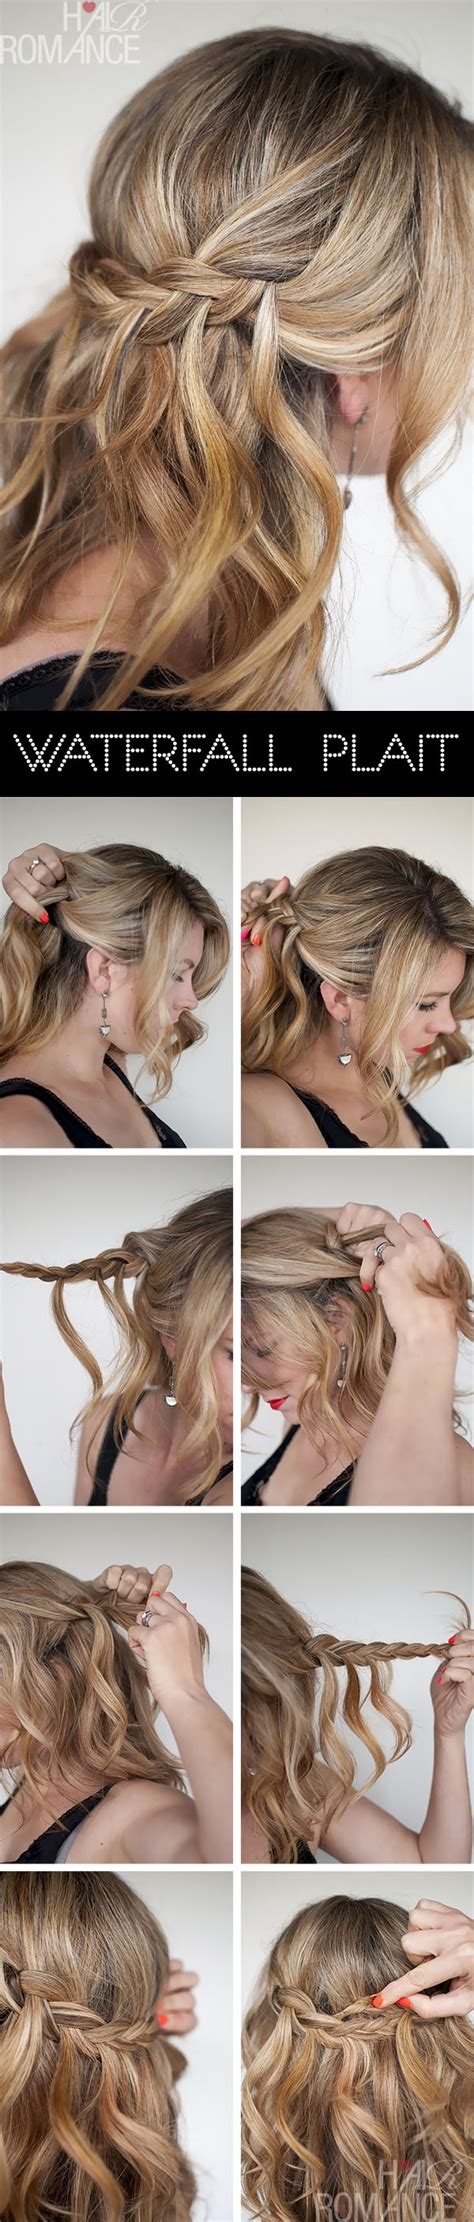 waterfall hairstyle step by step waterfall plait hairstyle tutorial hair romance